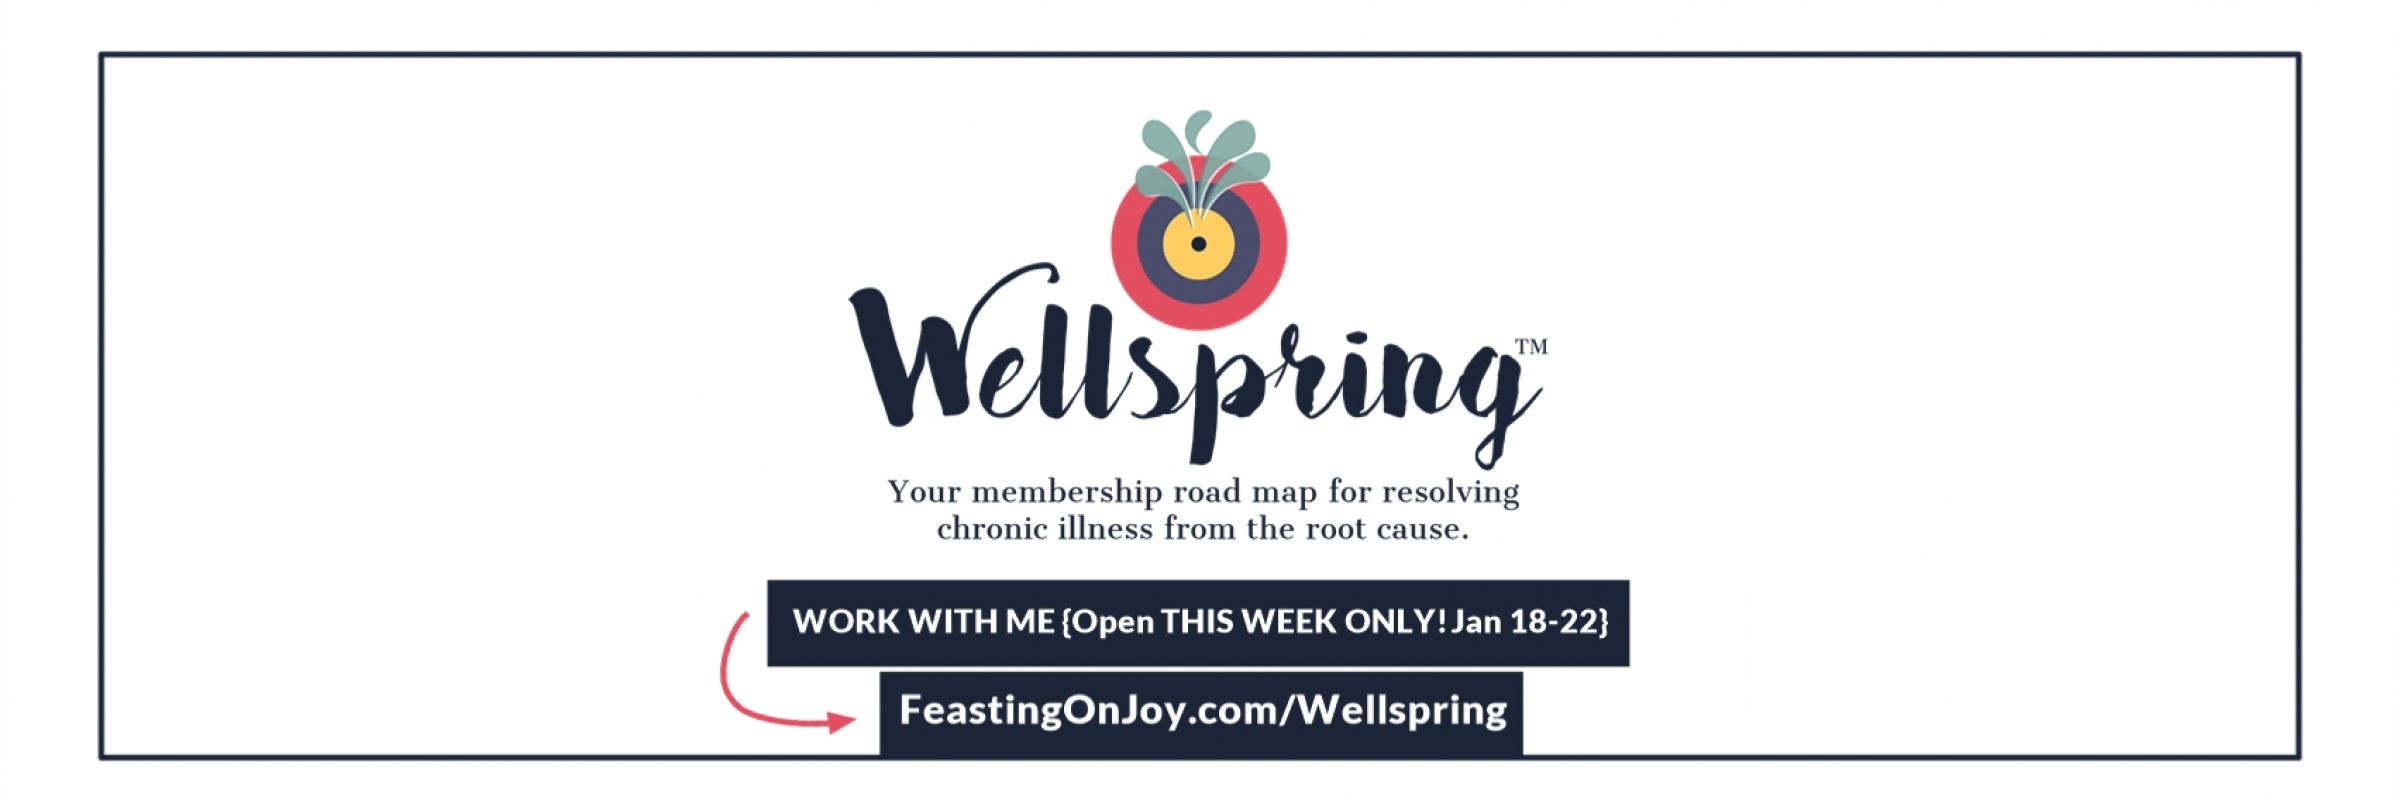 Wellspring Open Enrollment Jannuary 18 to 22